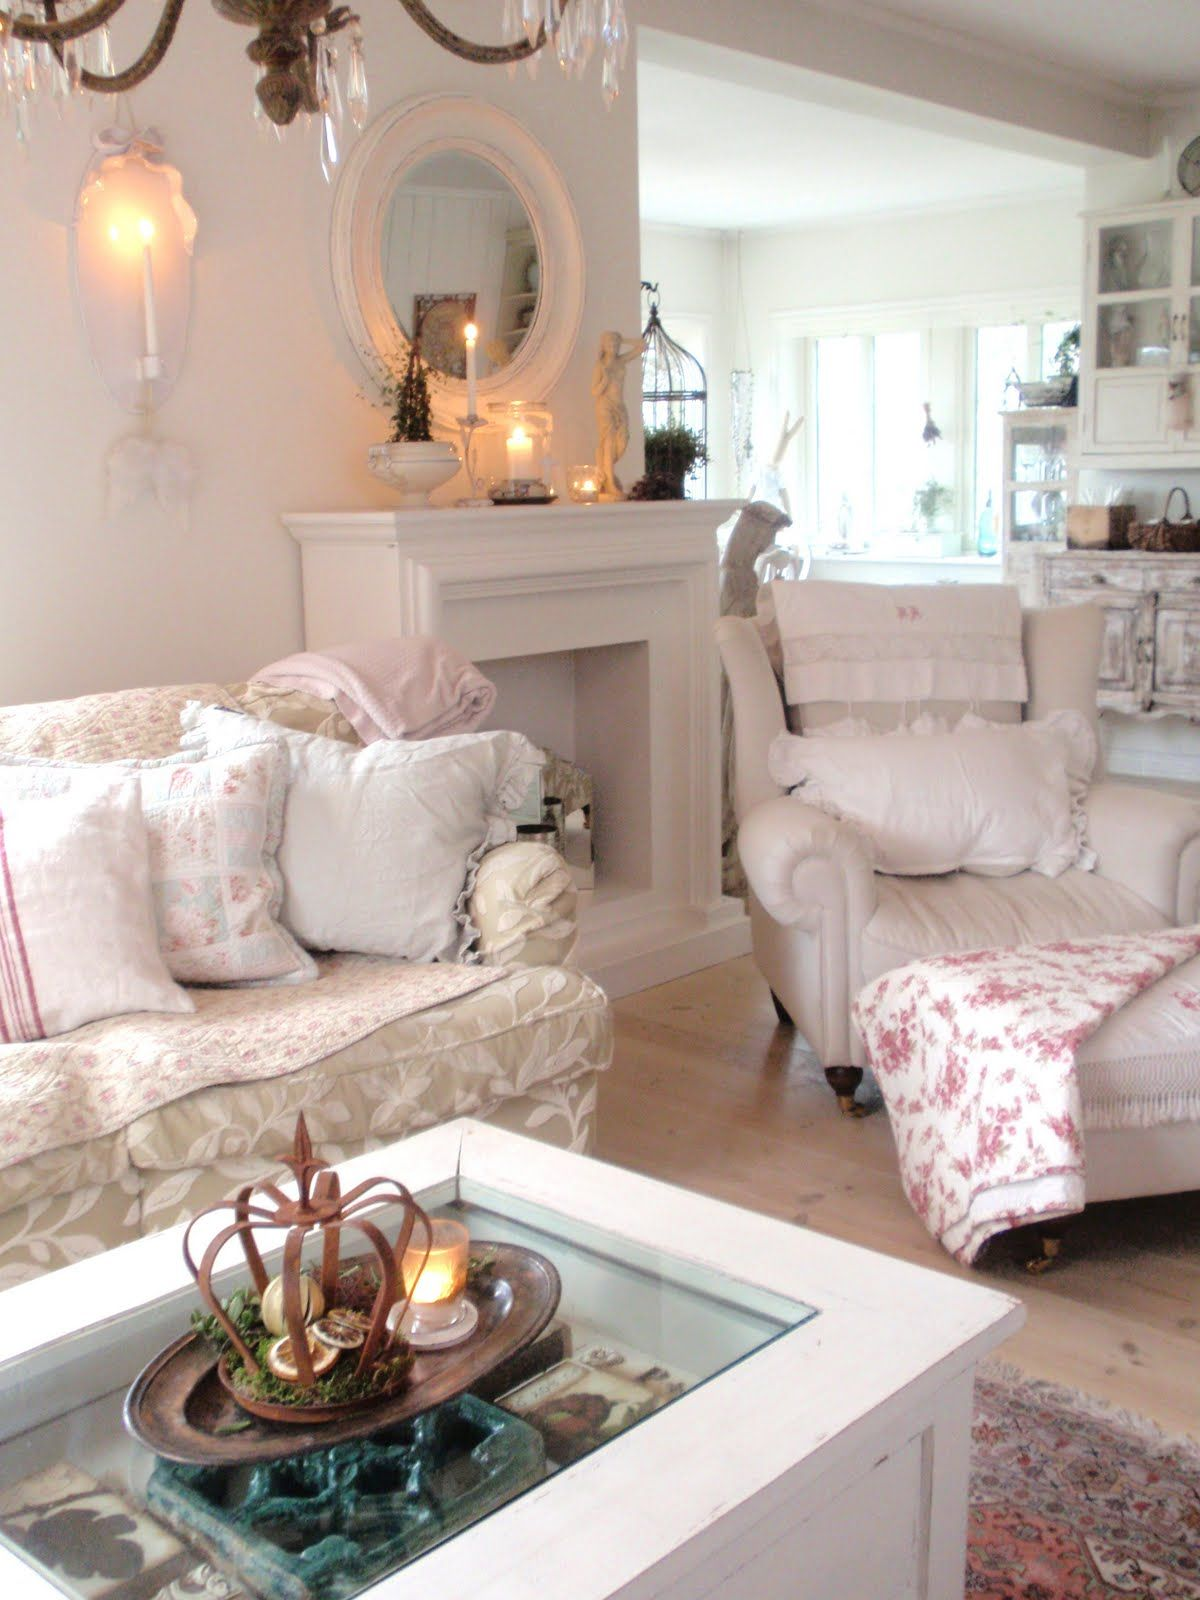 Living Room Whitewashed Chippy Shabby Chic French Country Rustic Swedish Decor Idea Country Chic Living Room Country Shabby Chic Decor Shabby Chic Room